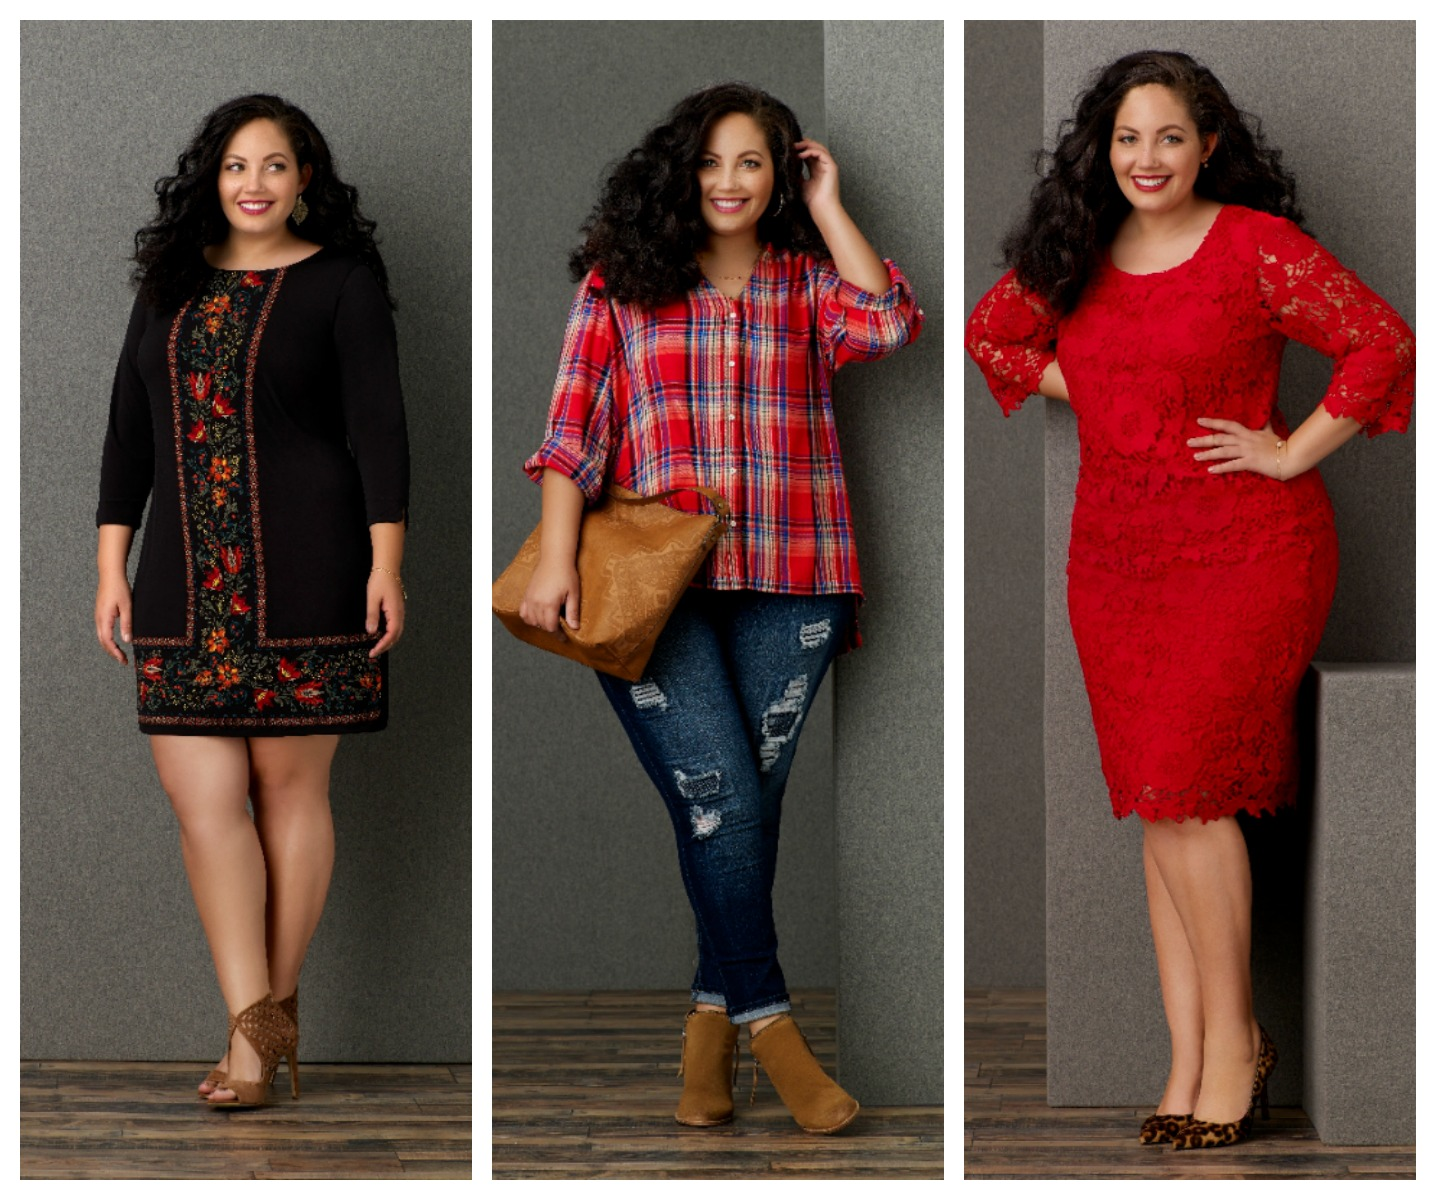 Sears Girls Plus Size Dresses